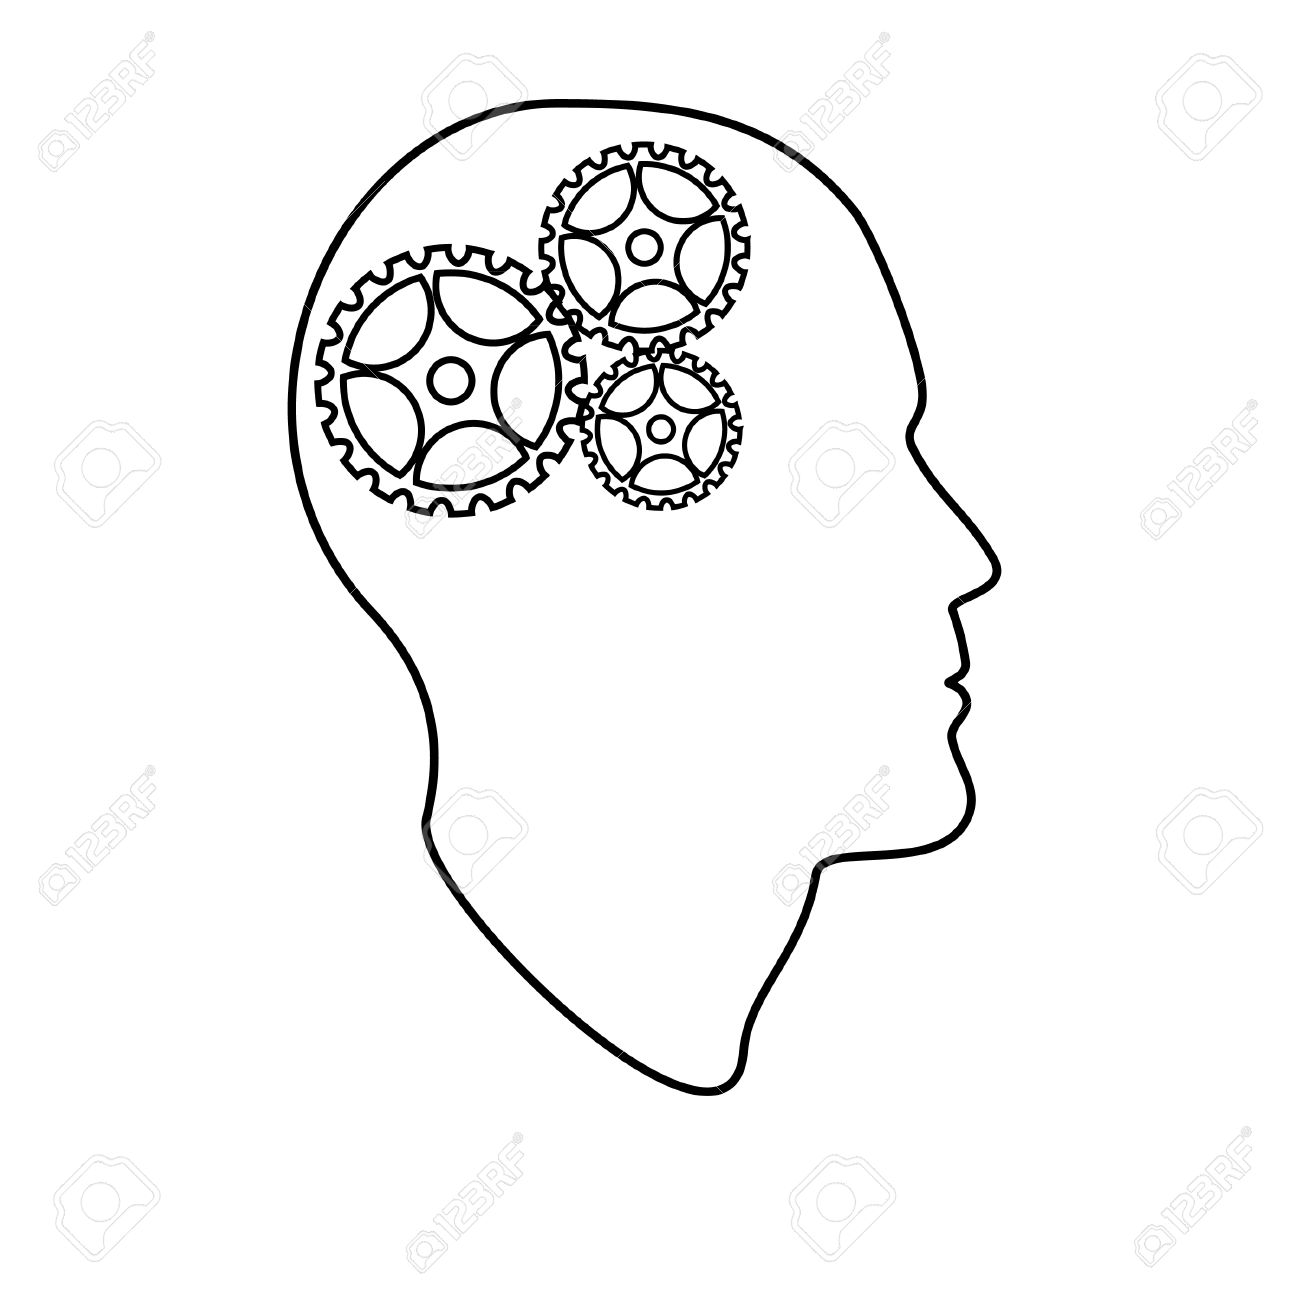 1300x1300 Outline Drawings Of Head Brain Vector Illustration, Creative